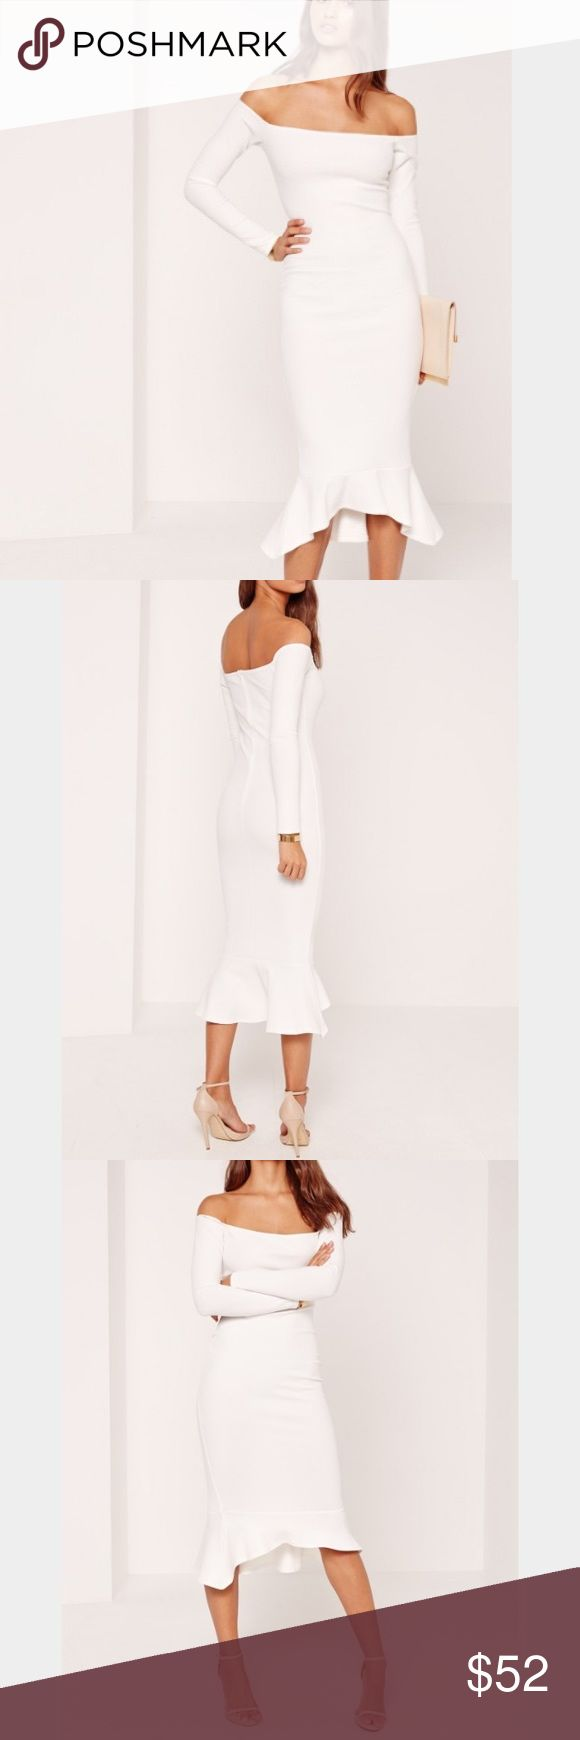 BRAND NEW with tags size 10 White Midi Dress Brand new with tags size 10 White Fishtail Hem Dress. Runs small for a 10. Missguided Dresses Midi